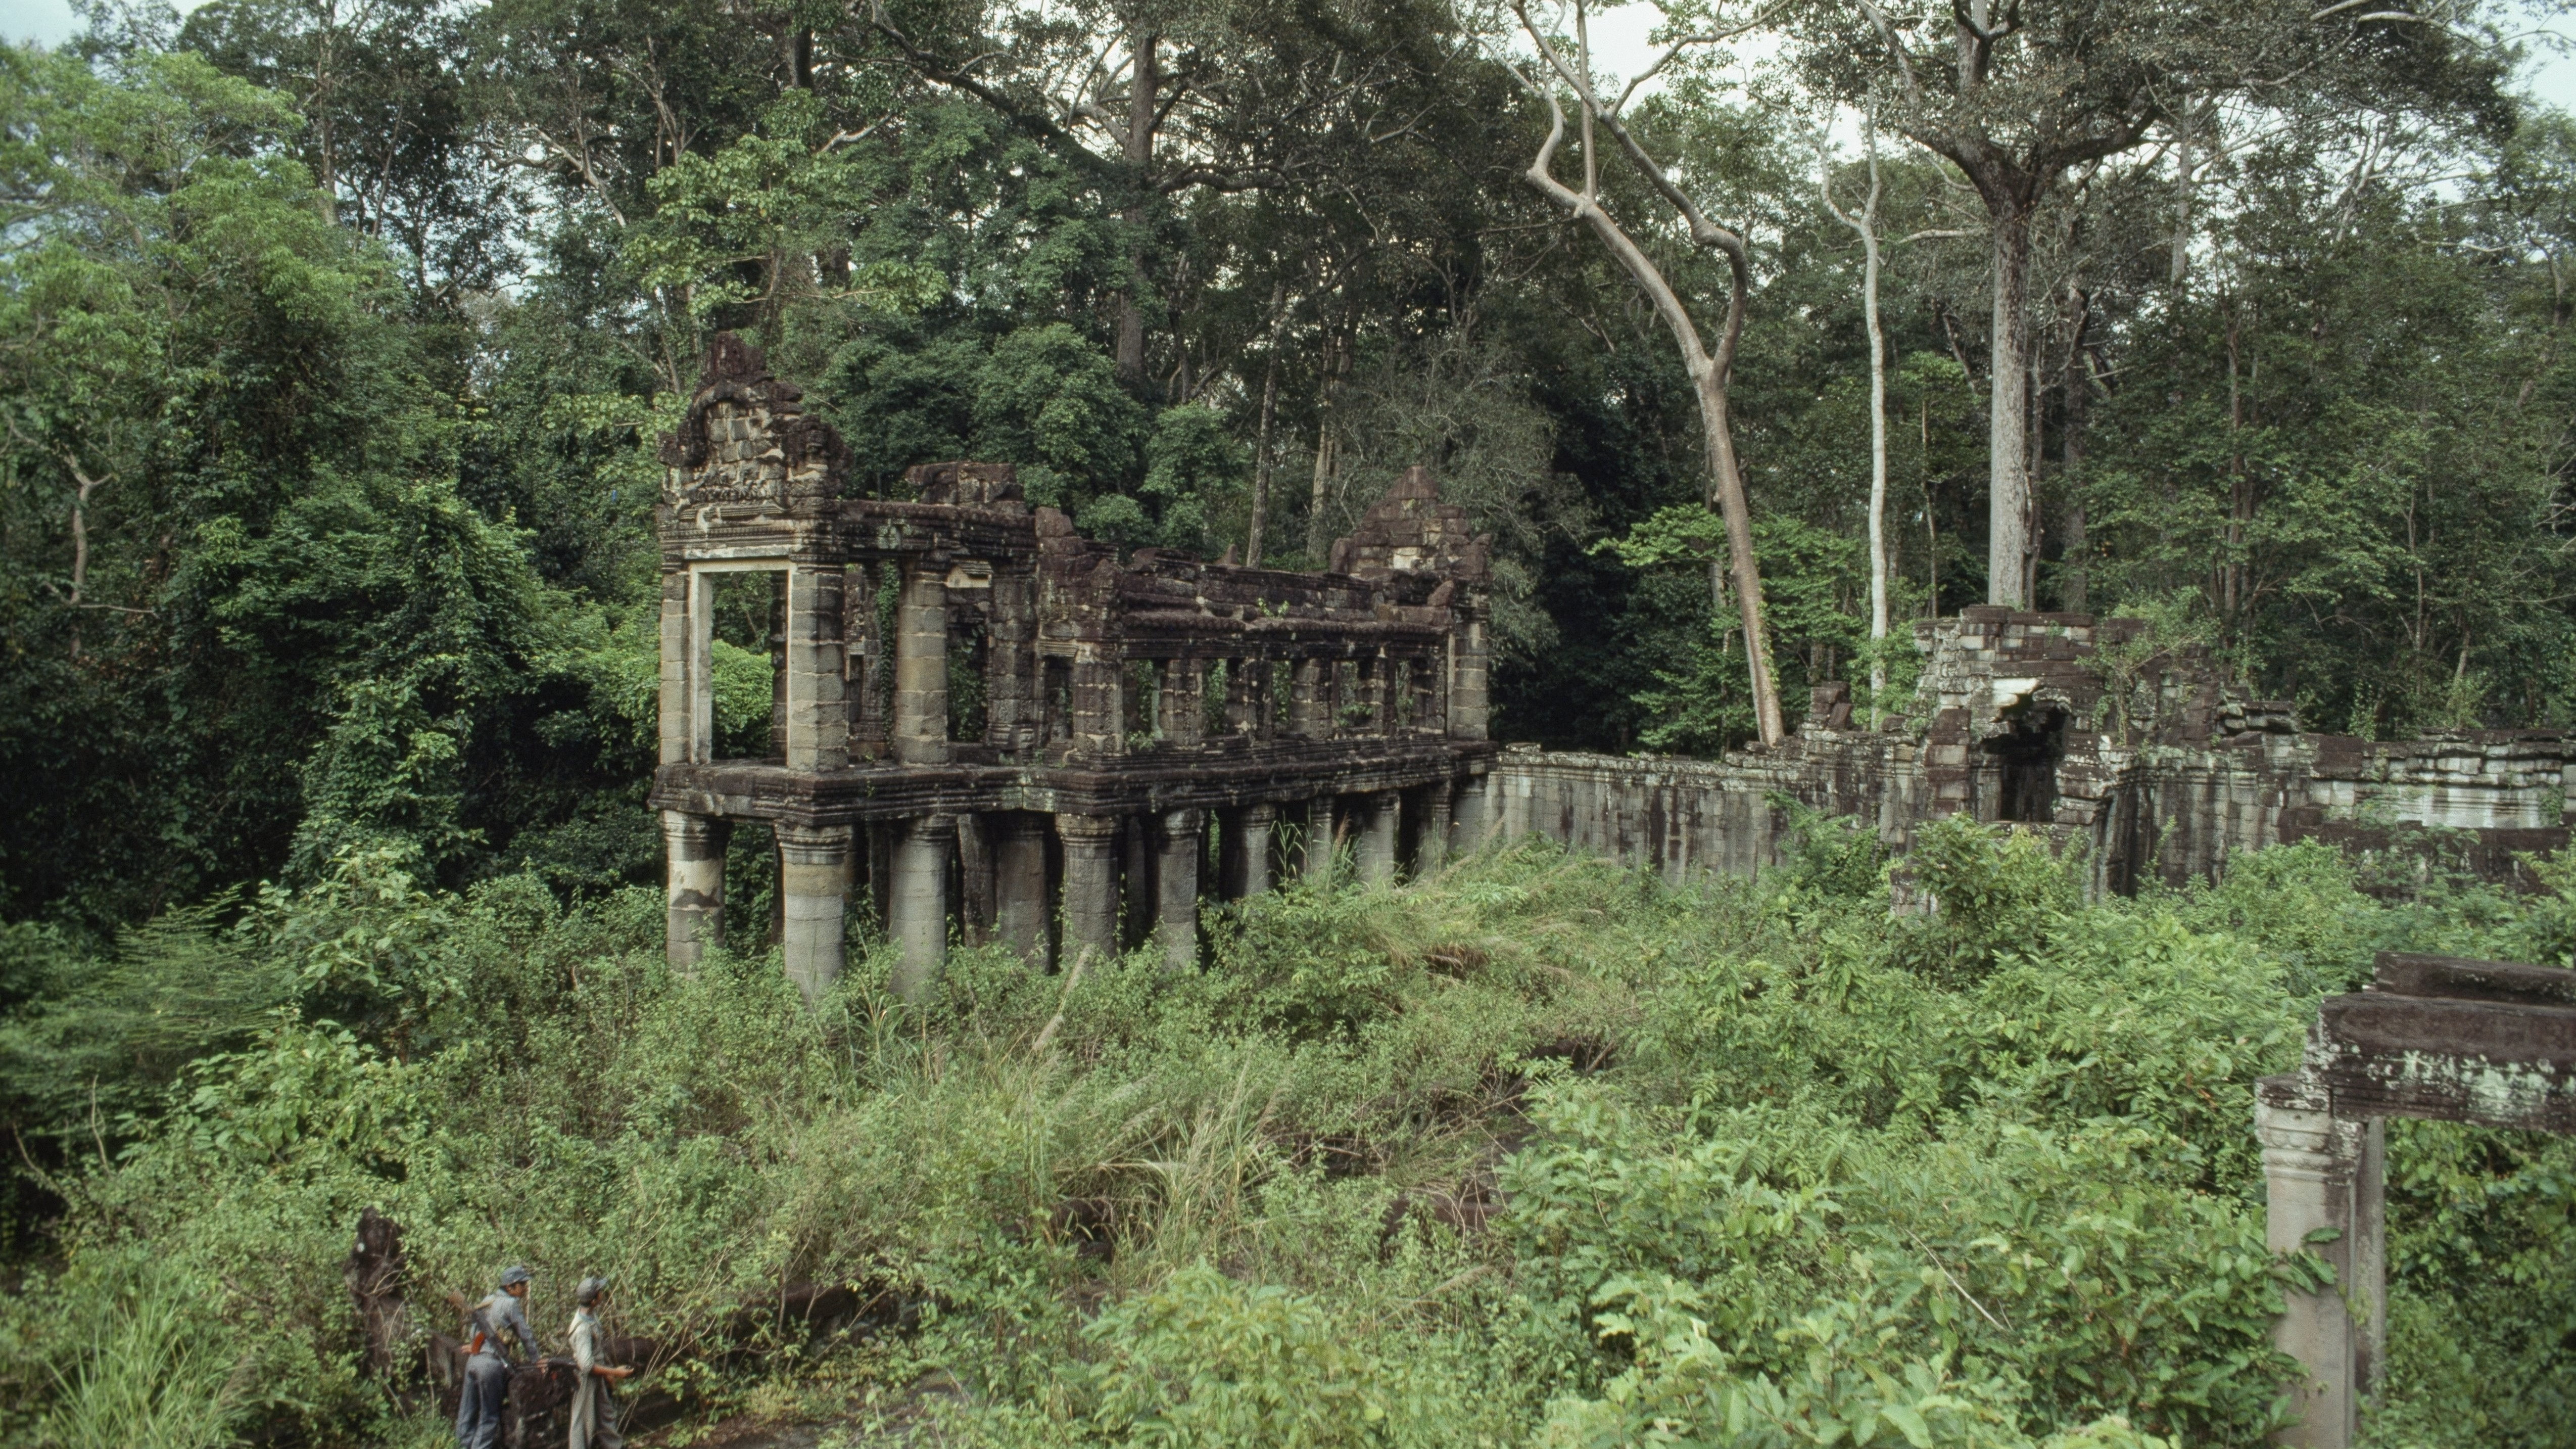 Archaeologists Uncover Lost Kingdom In Cambodian Jungle